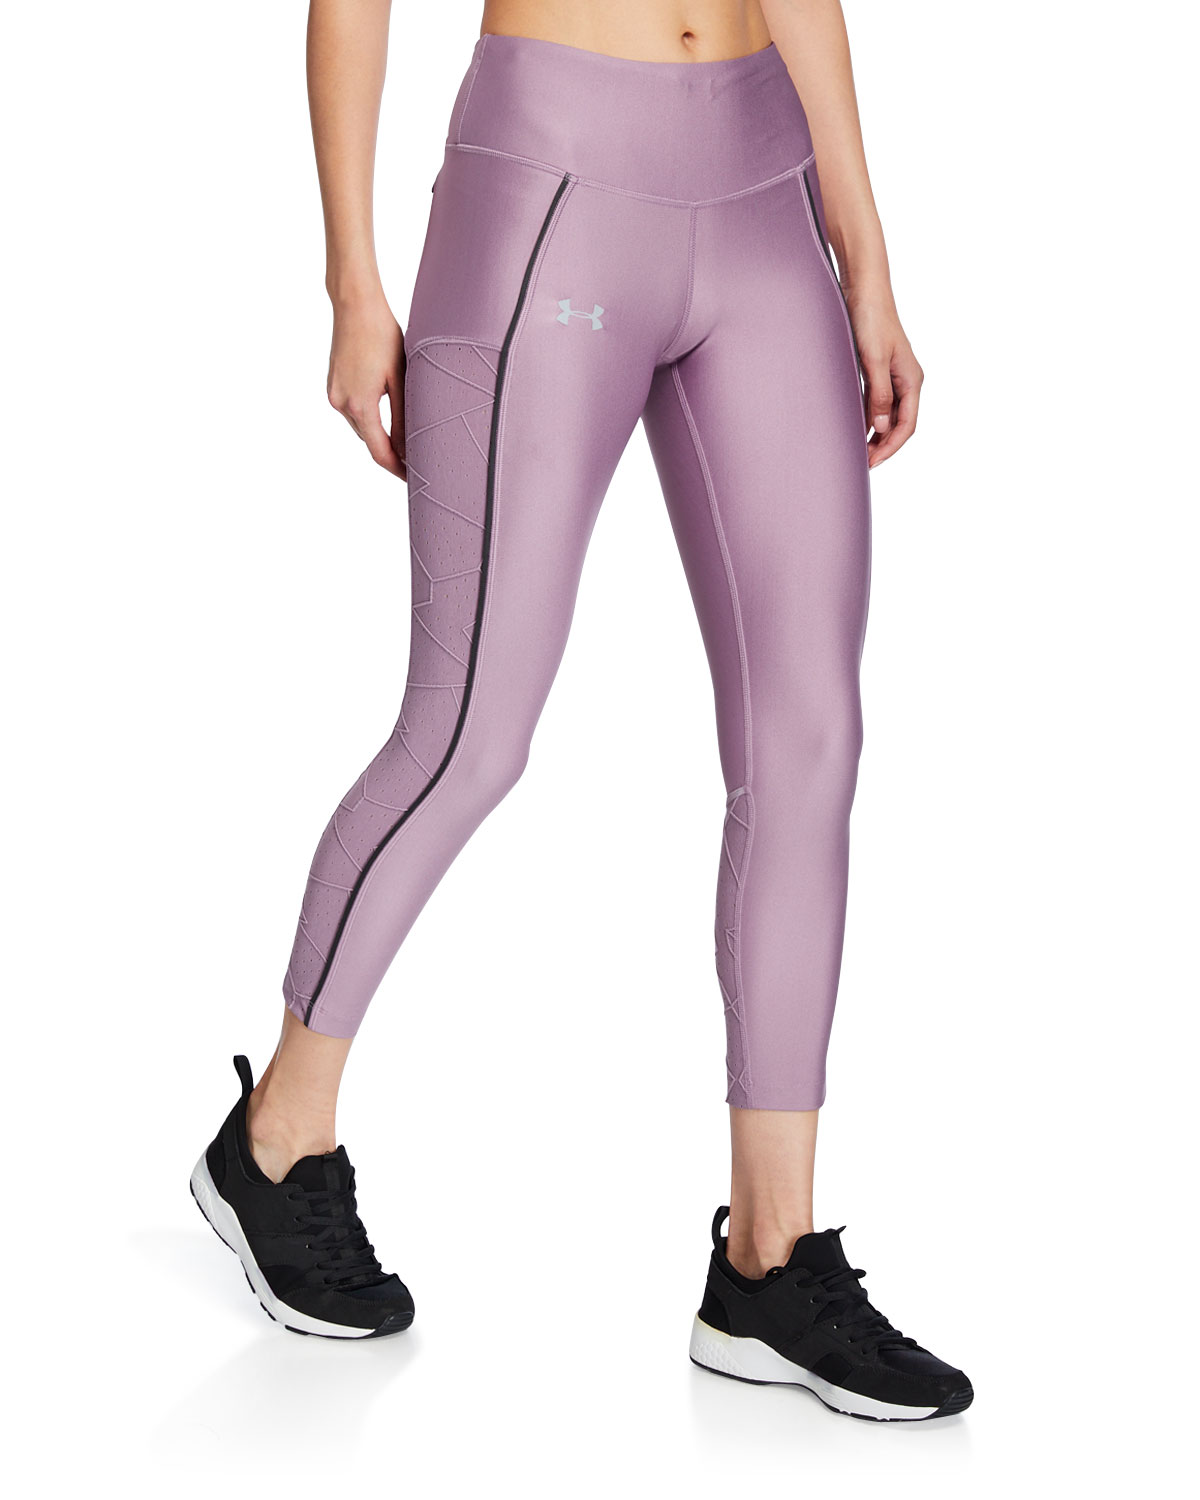 Under Armour Pants ARMOUR FLY FAST CROPPED LEGGINGS W/ RAISE THREADS